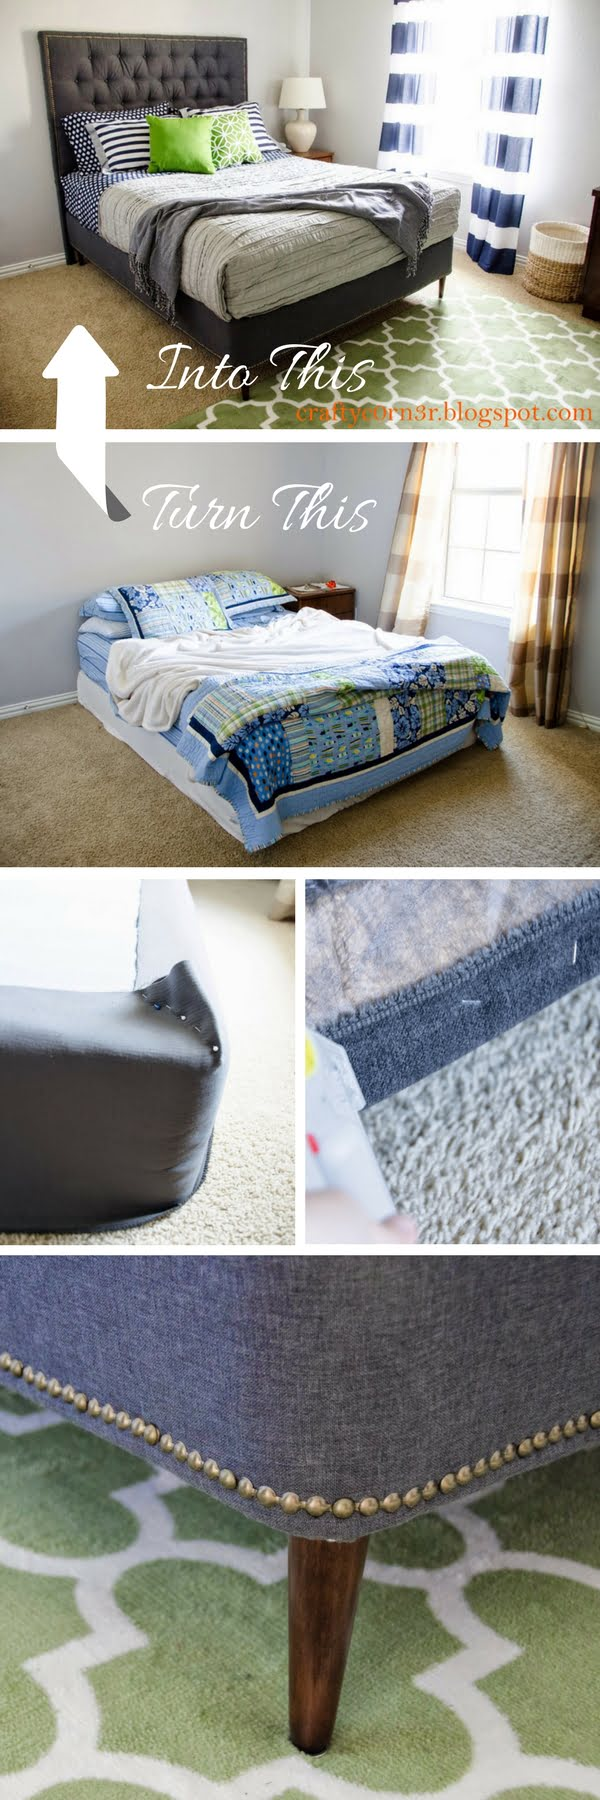 45 Easy DIY Bed Frame Projects You Can Build on a Budget - Check out how to build a DIY platform bed from box spring